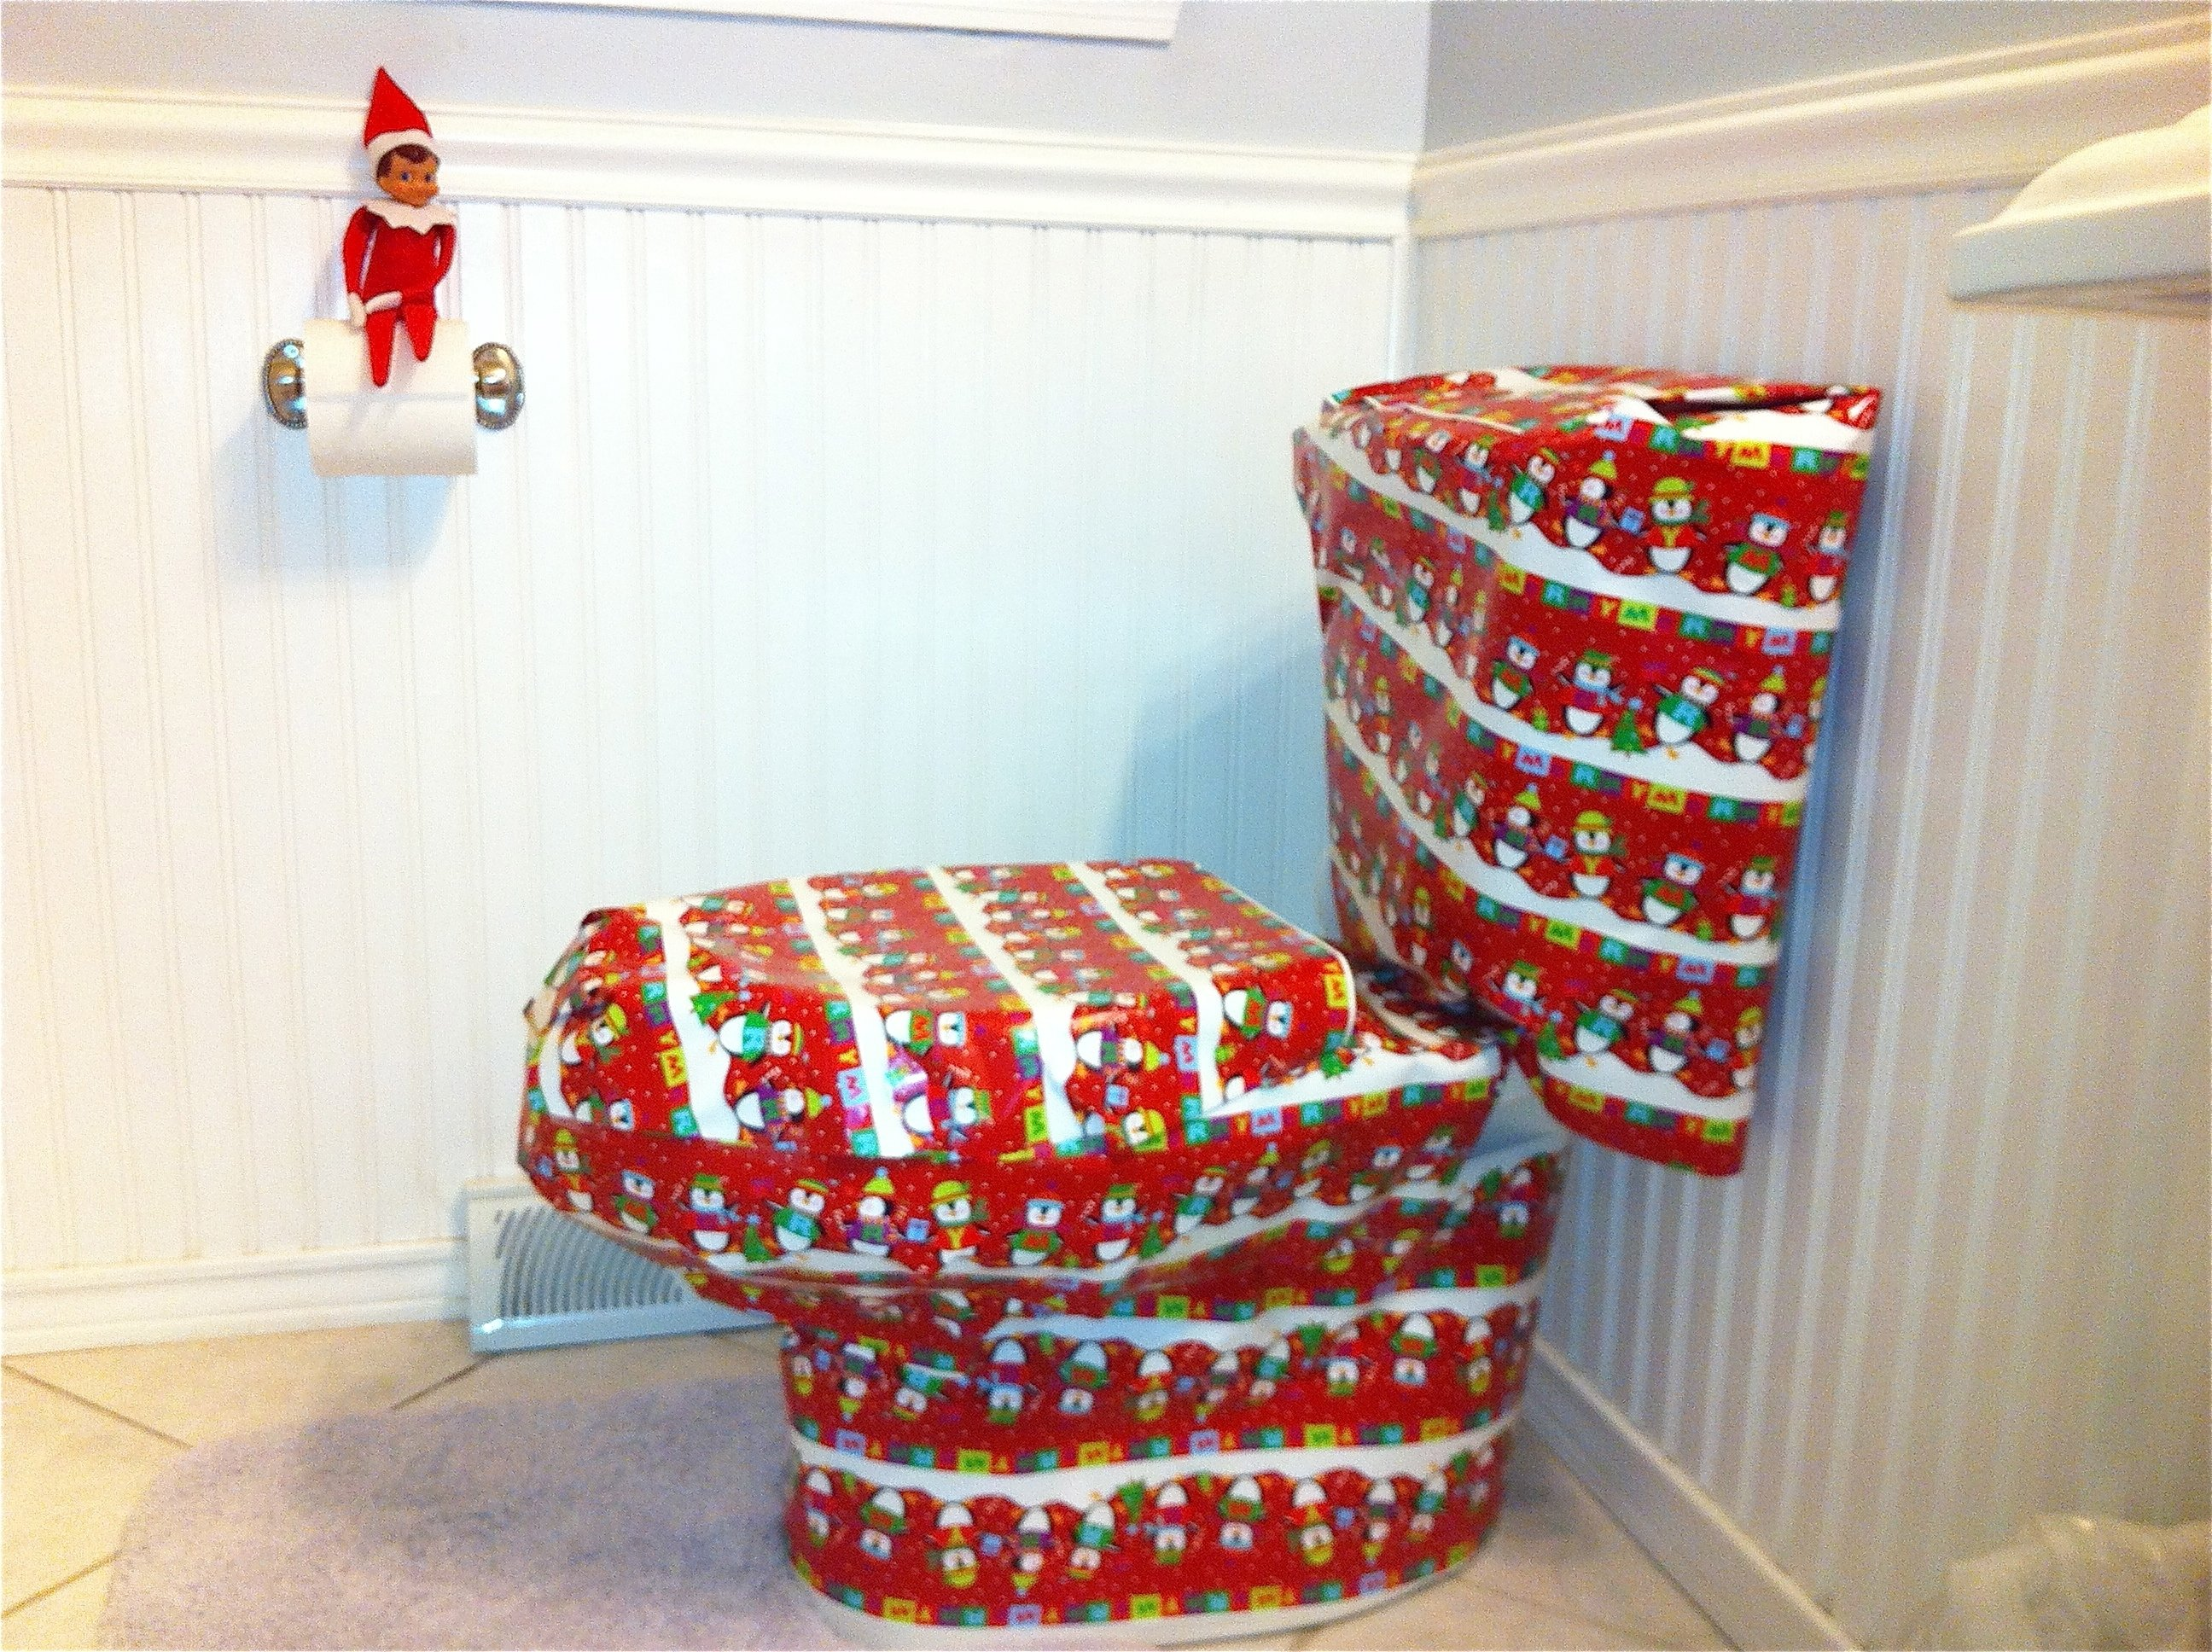 10 Nice Naughty Elf On The Shelf Ideas 25 elf on the shelf quick and easy ideas that take under 5 mins 6 2021